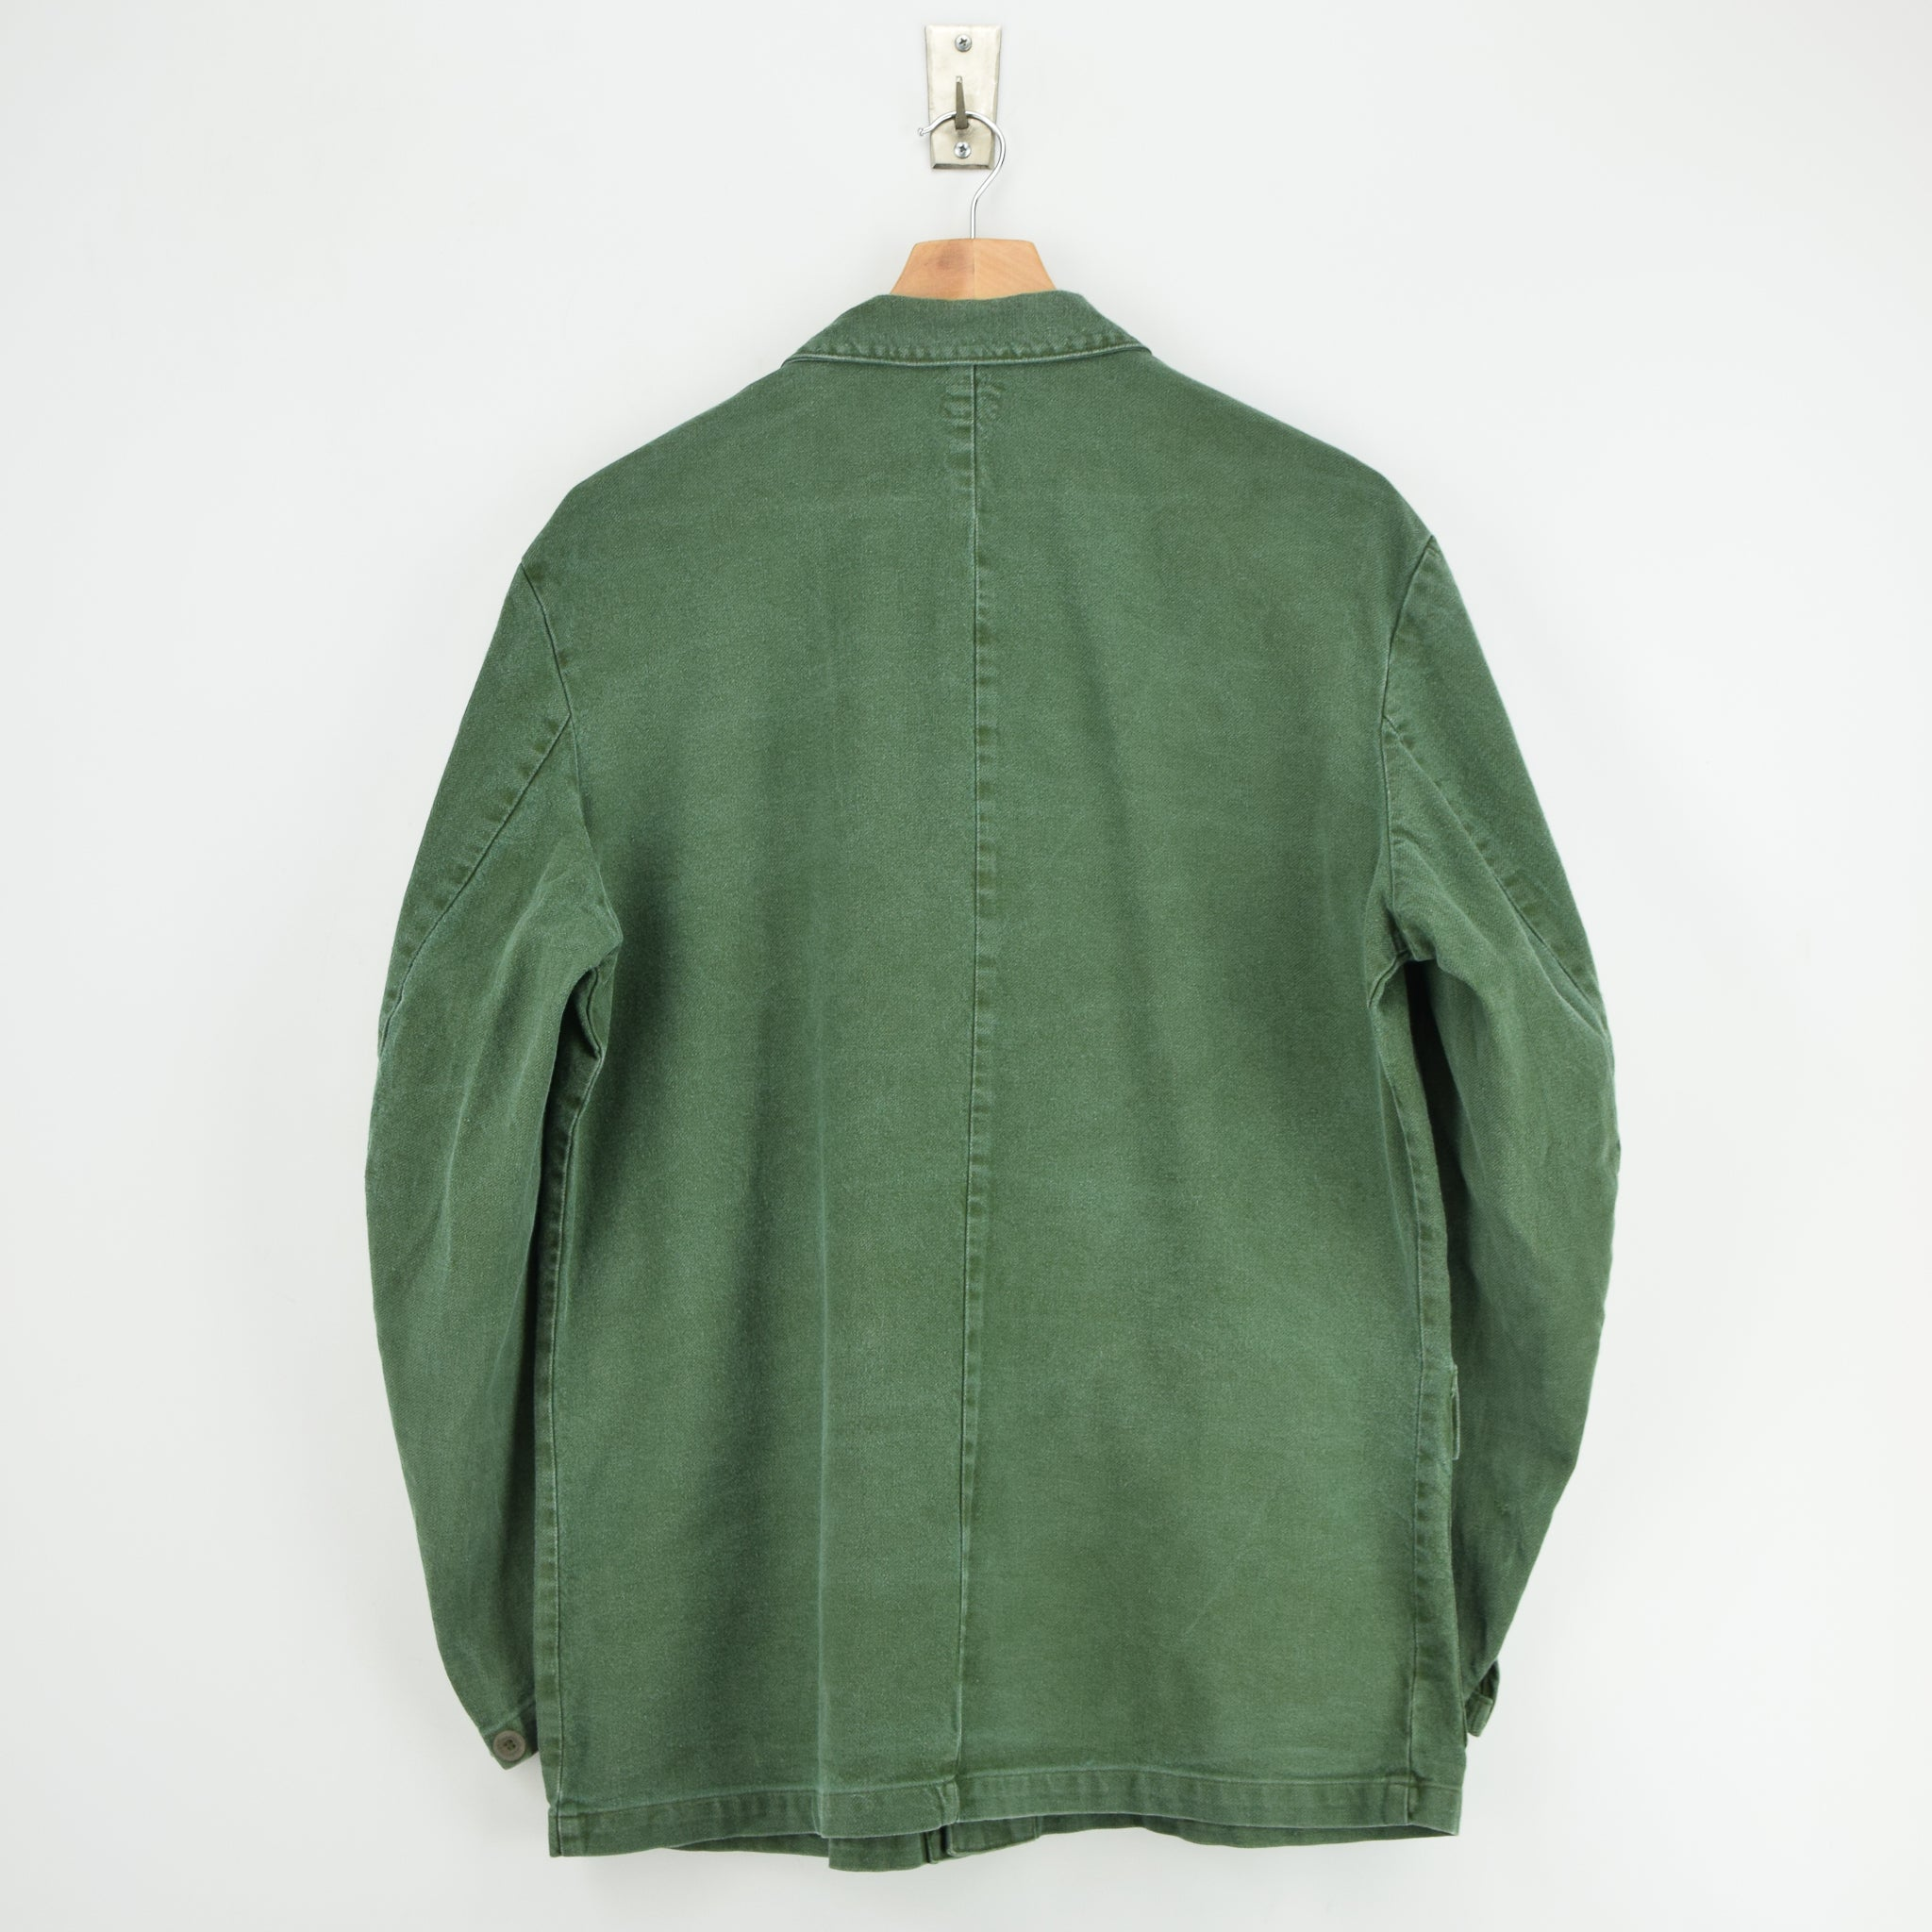 Vintage Swedish Worker Style Green Distressed Military Cotton Field Jacket L back